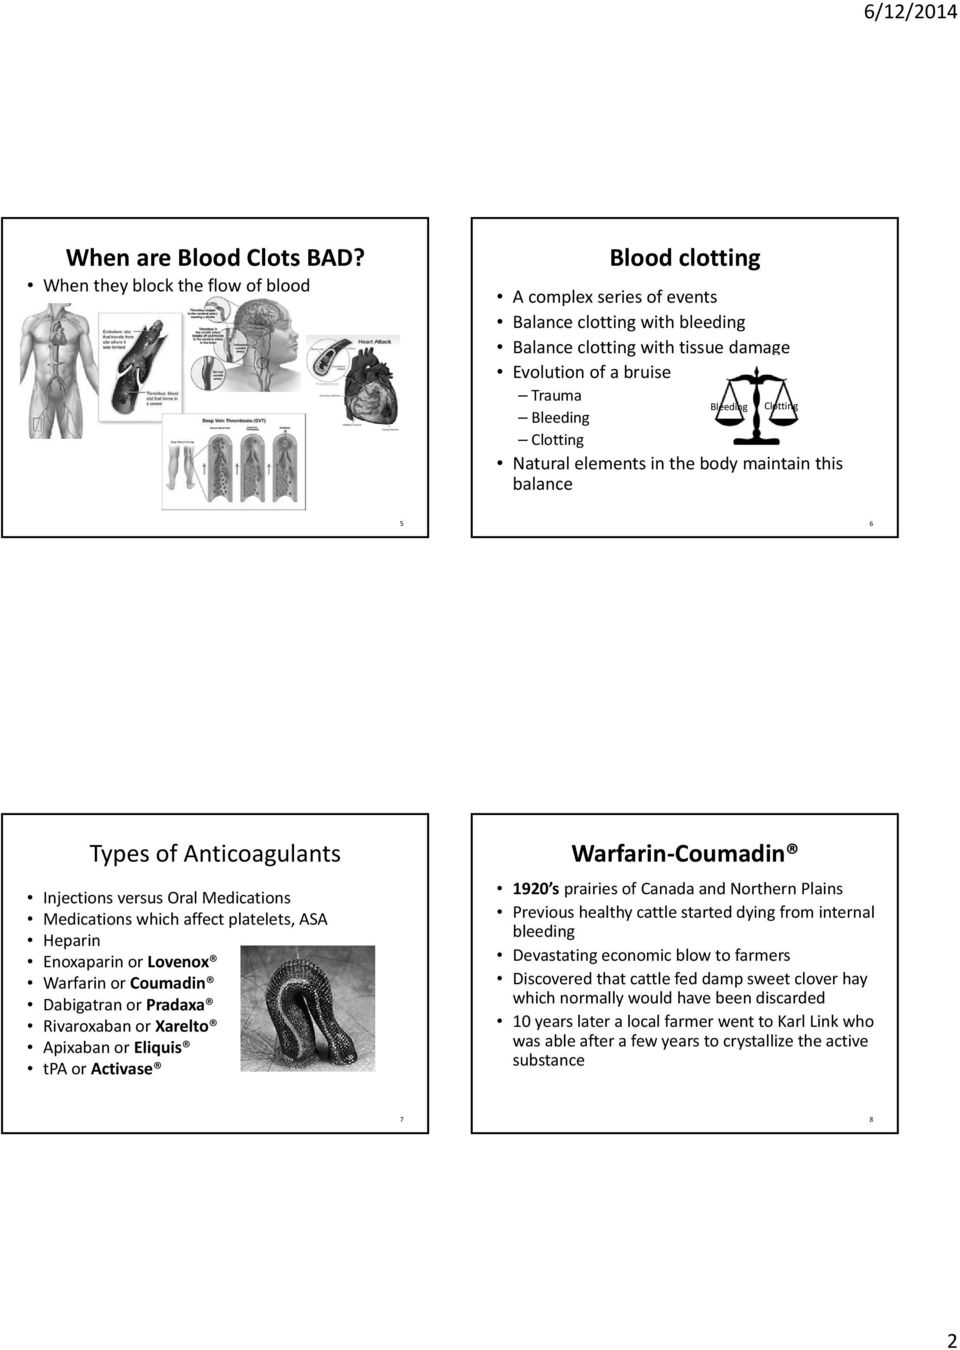 Clotting Natural elements in the body maintain this balance 5 6 Types of Anticoagulants Injections versus Oral Medications Medications which affect platelets, ASA Heparin Enoxaparin or Lovenox